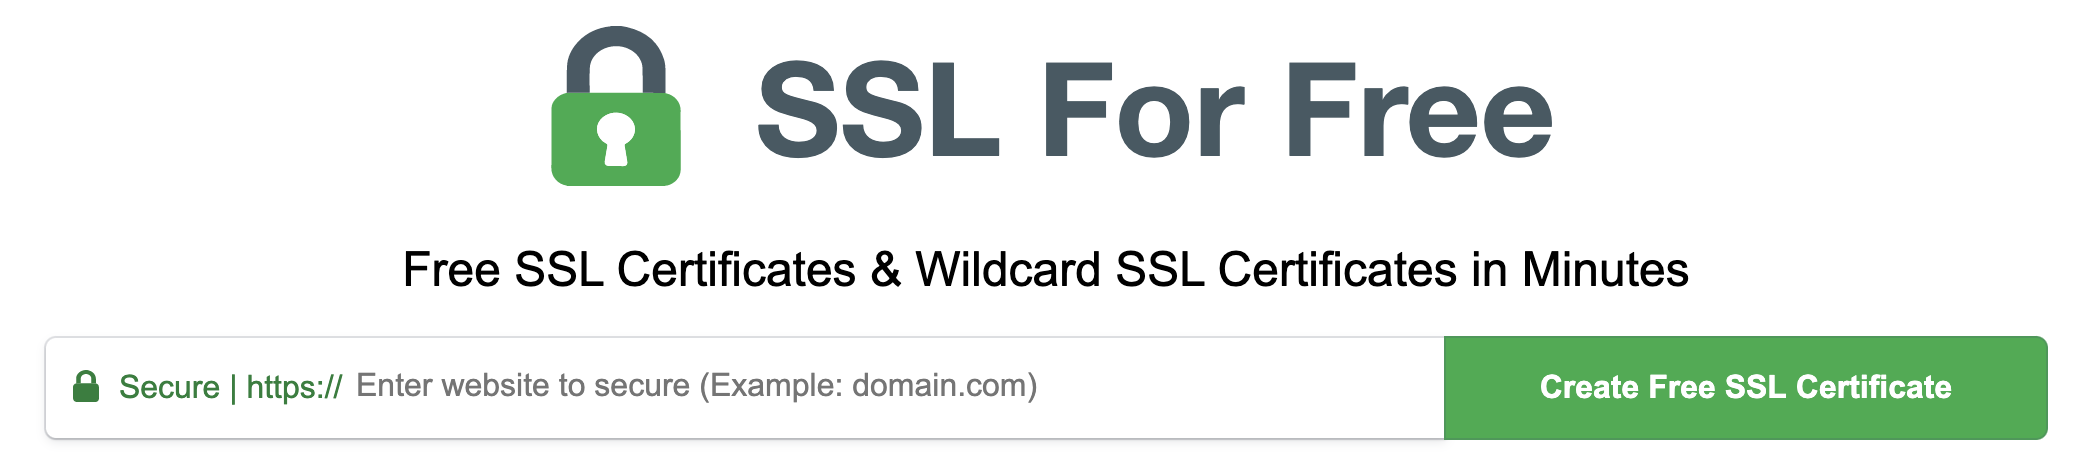 This image shows you how SSL For Free banner and a call to action button to create a free SSL certificate.